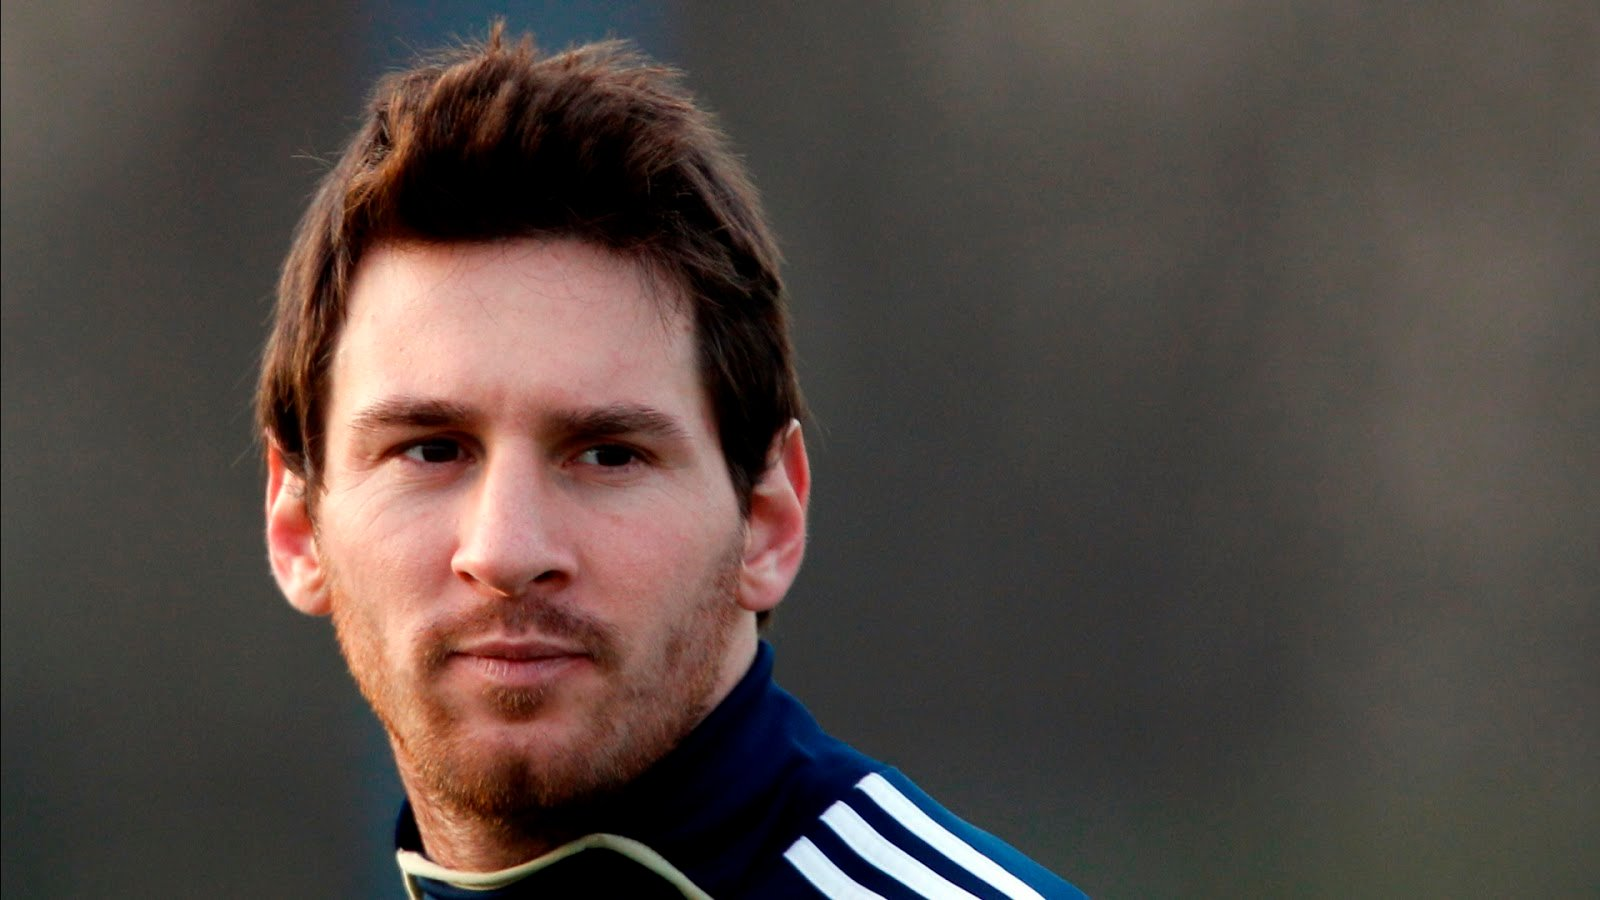 Full HD Quality Desktop Wallpapers Lionel Messi Full HD Wallpapers 1600x900